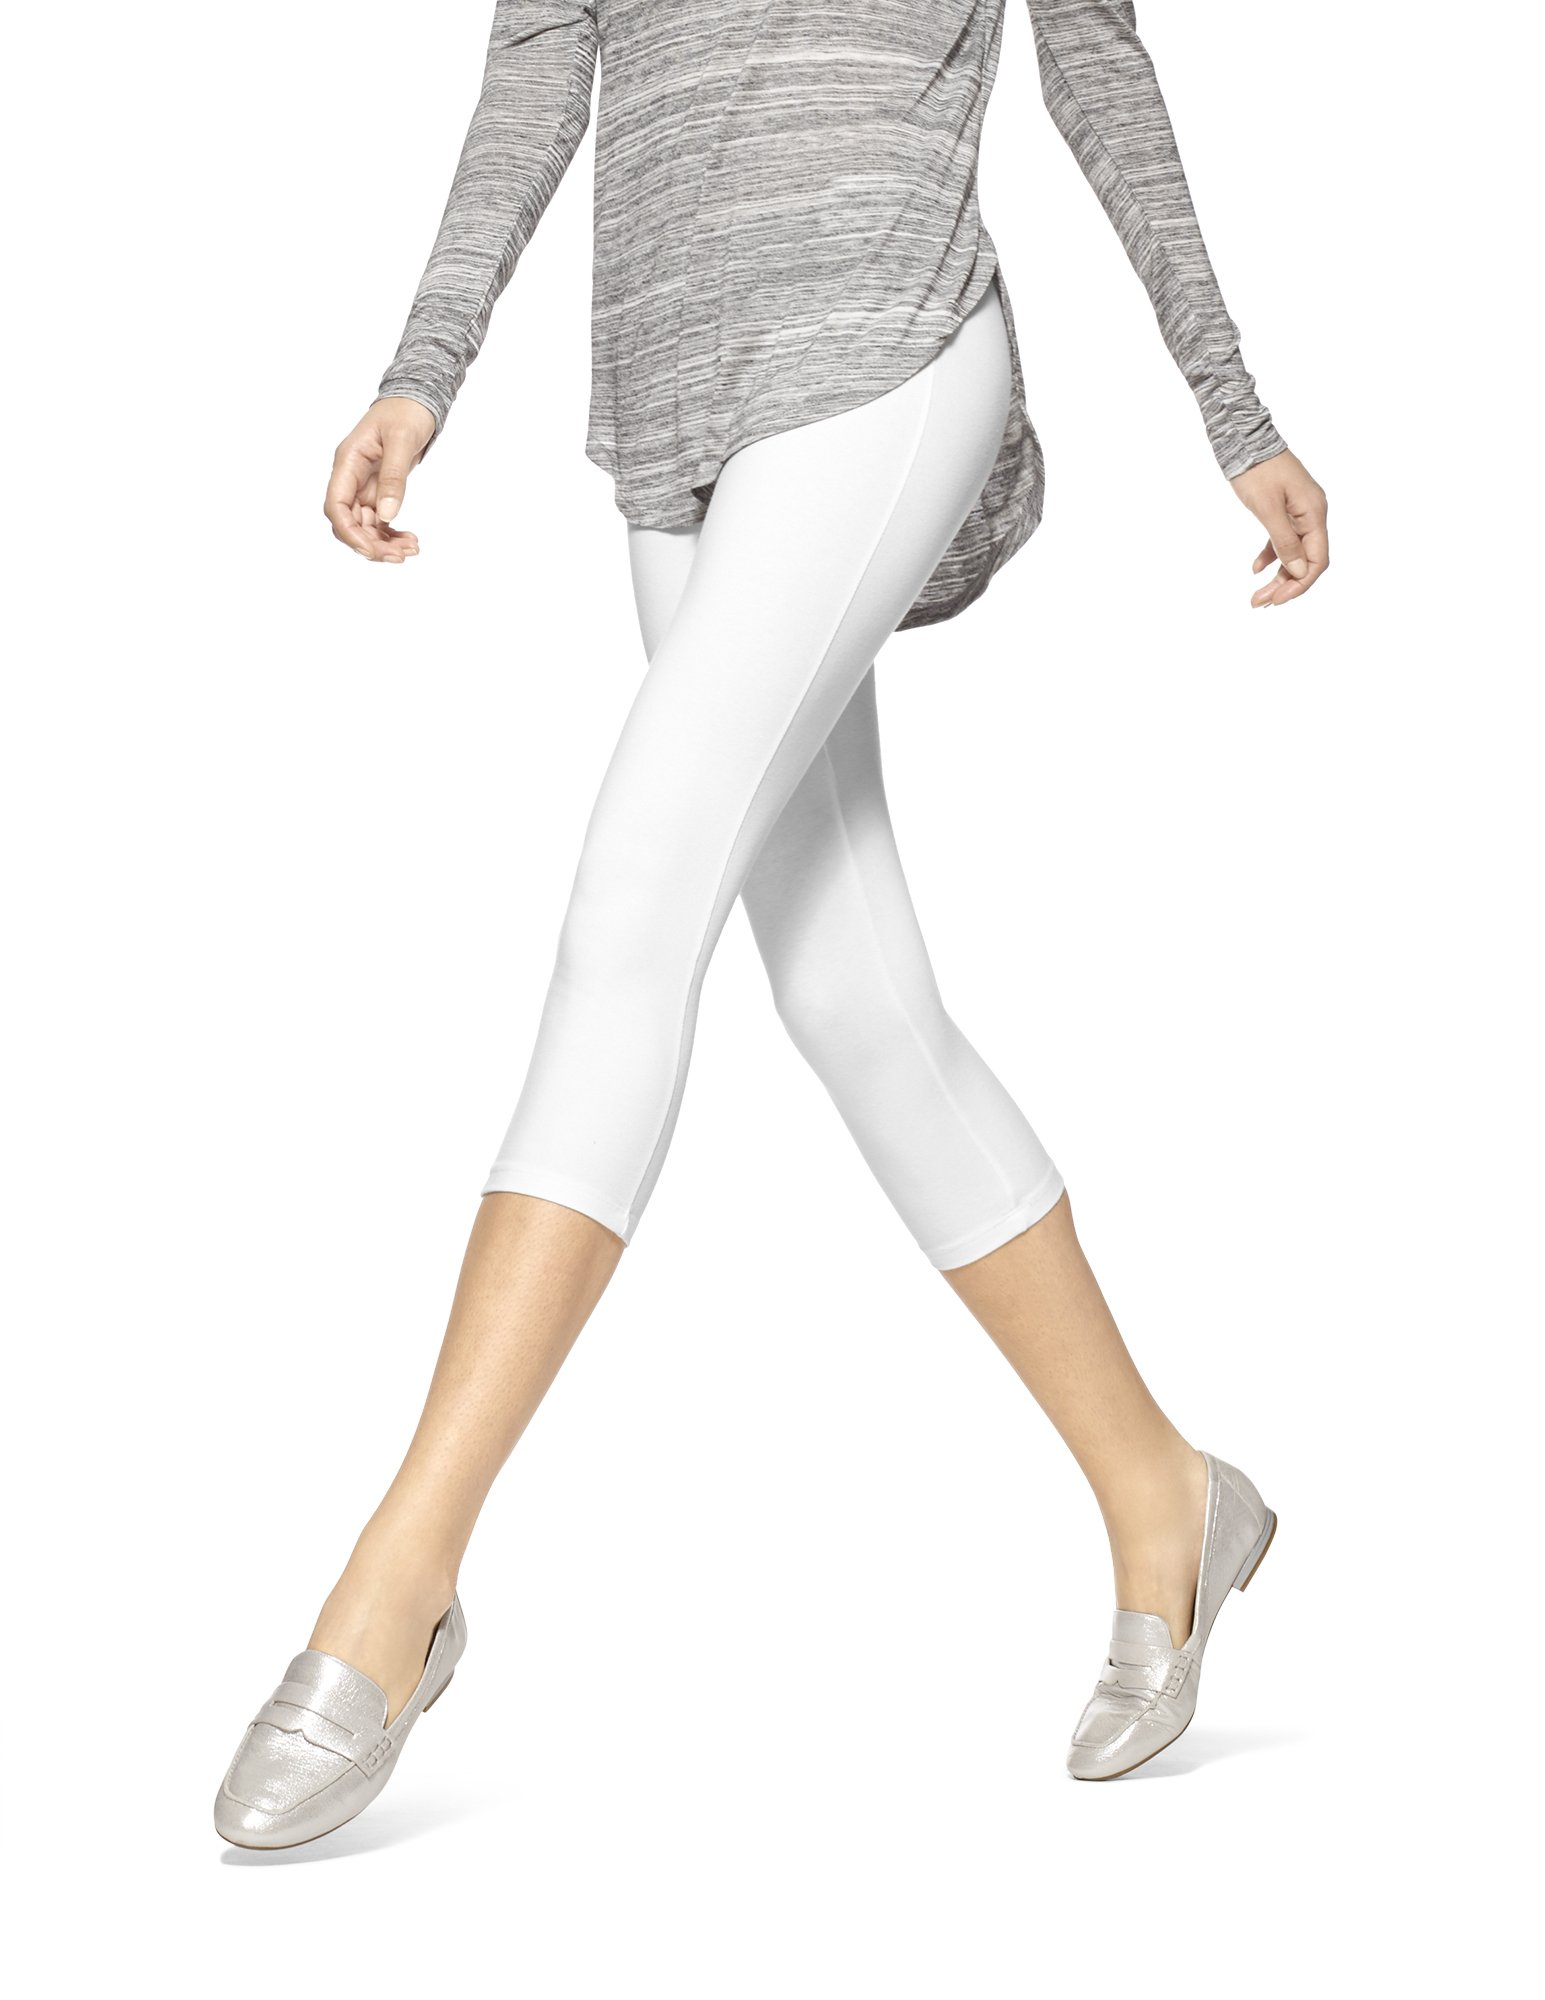 HUE Women's Temp Control Cotton Capri Leggings,White,Medium by HUE